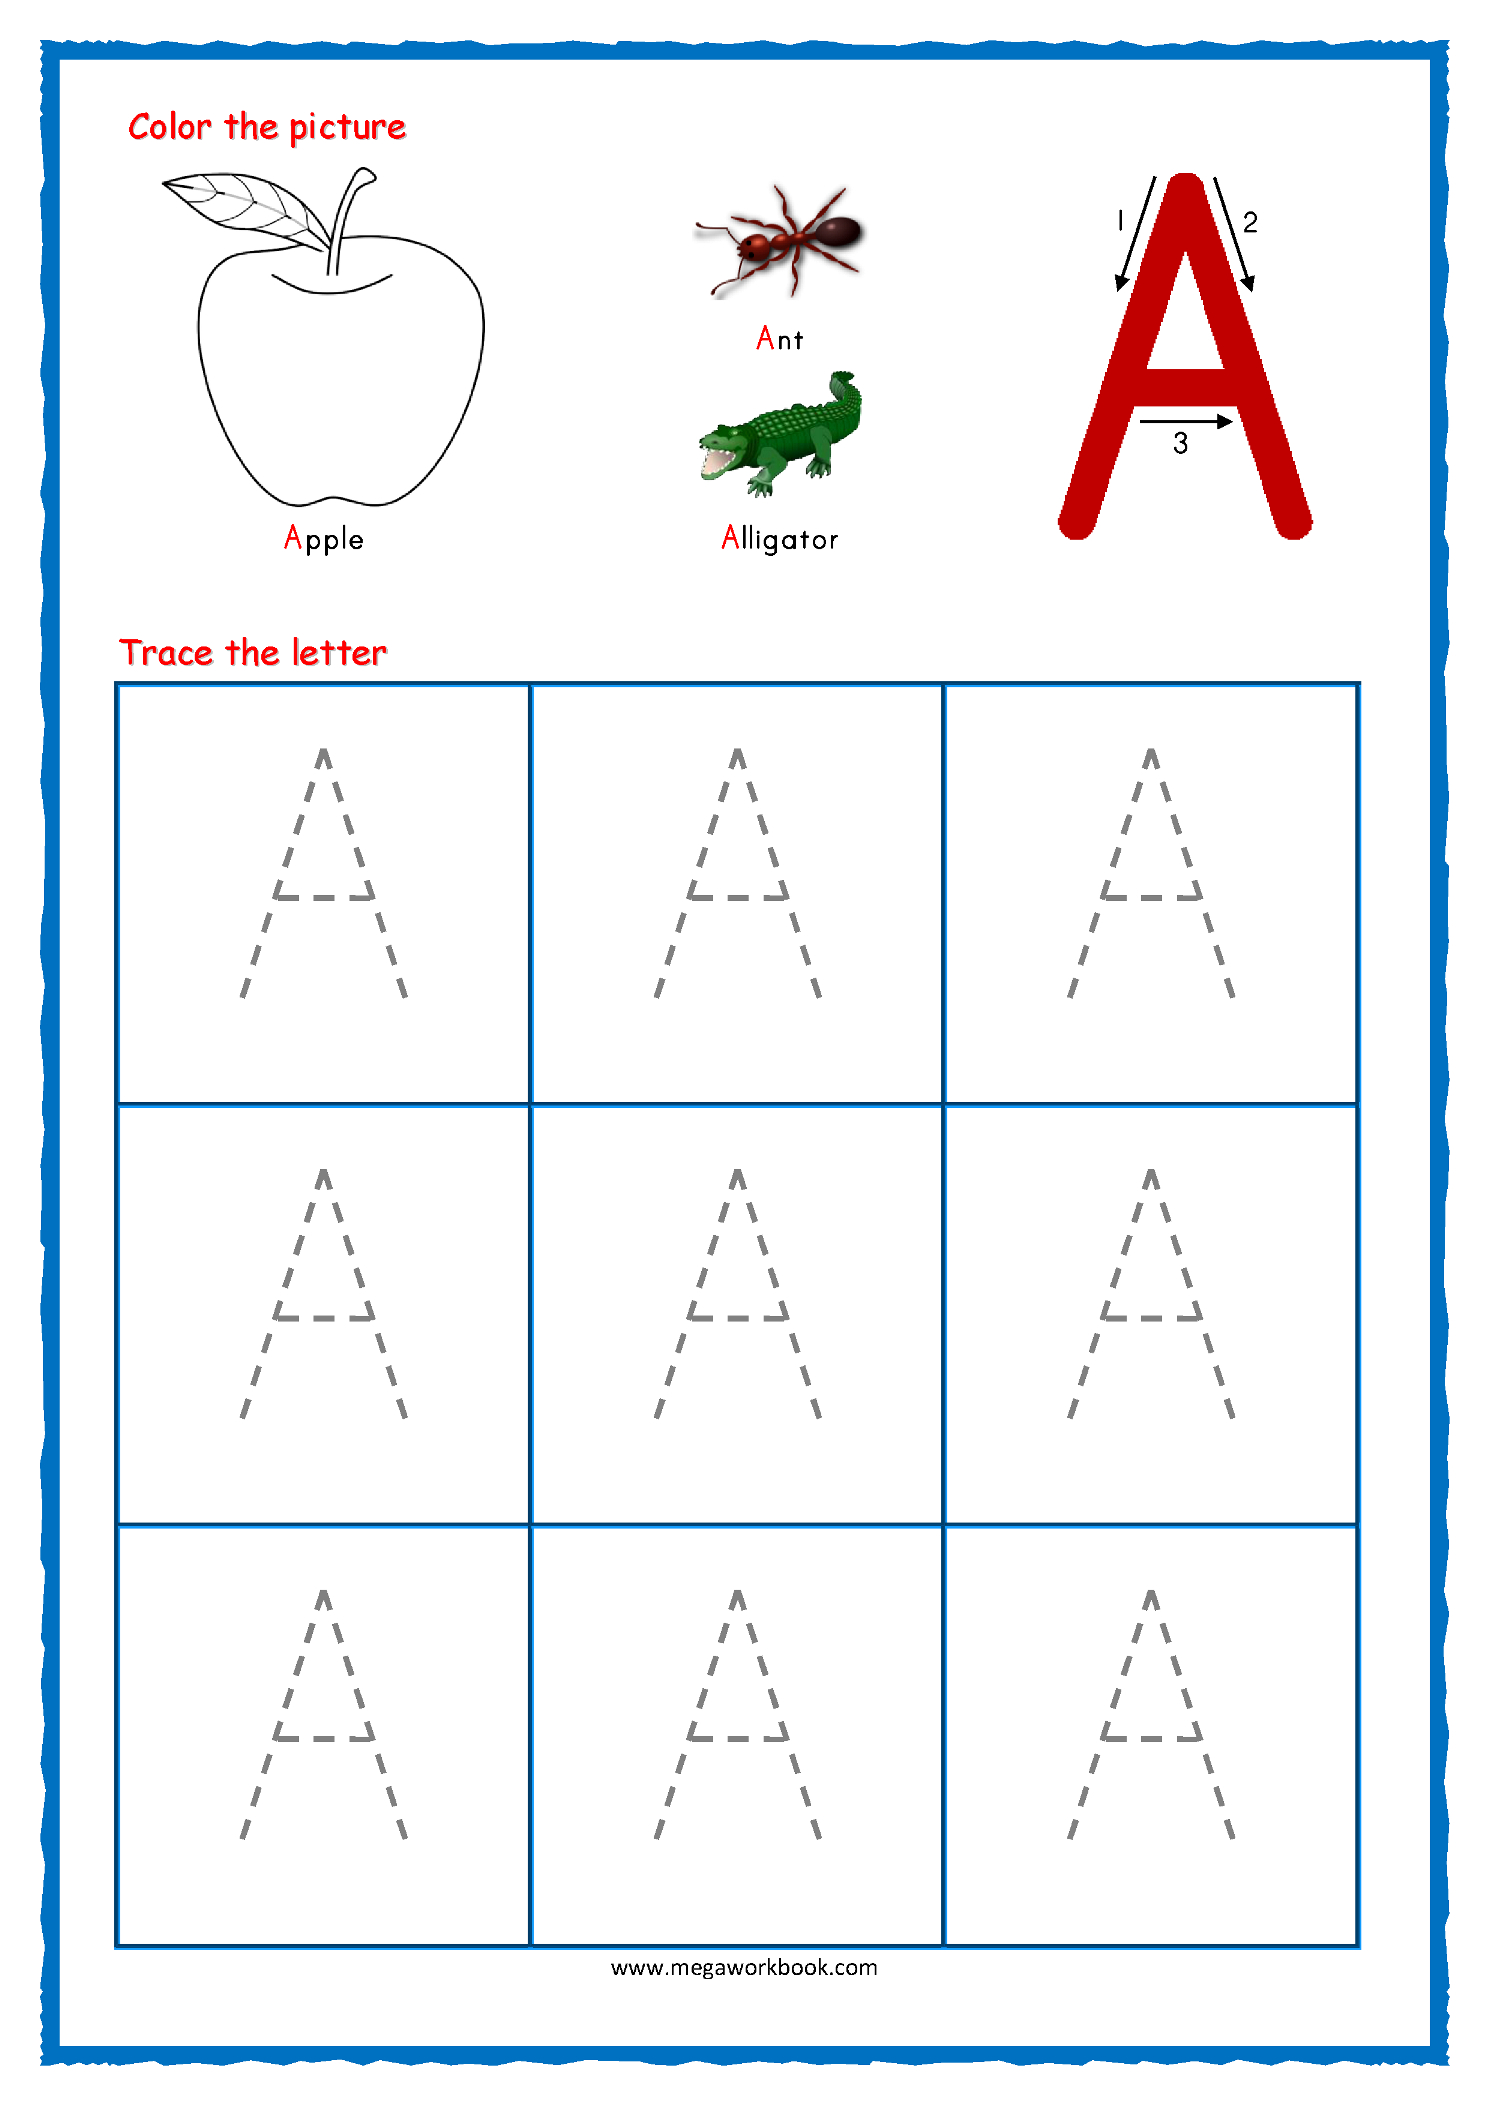 Tracing Letters - Alphabet Tracing - Capital Letters pertaining to Alphabet Tracing Pages Pdf